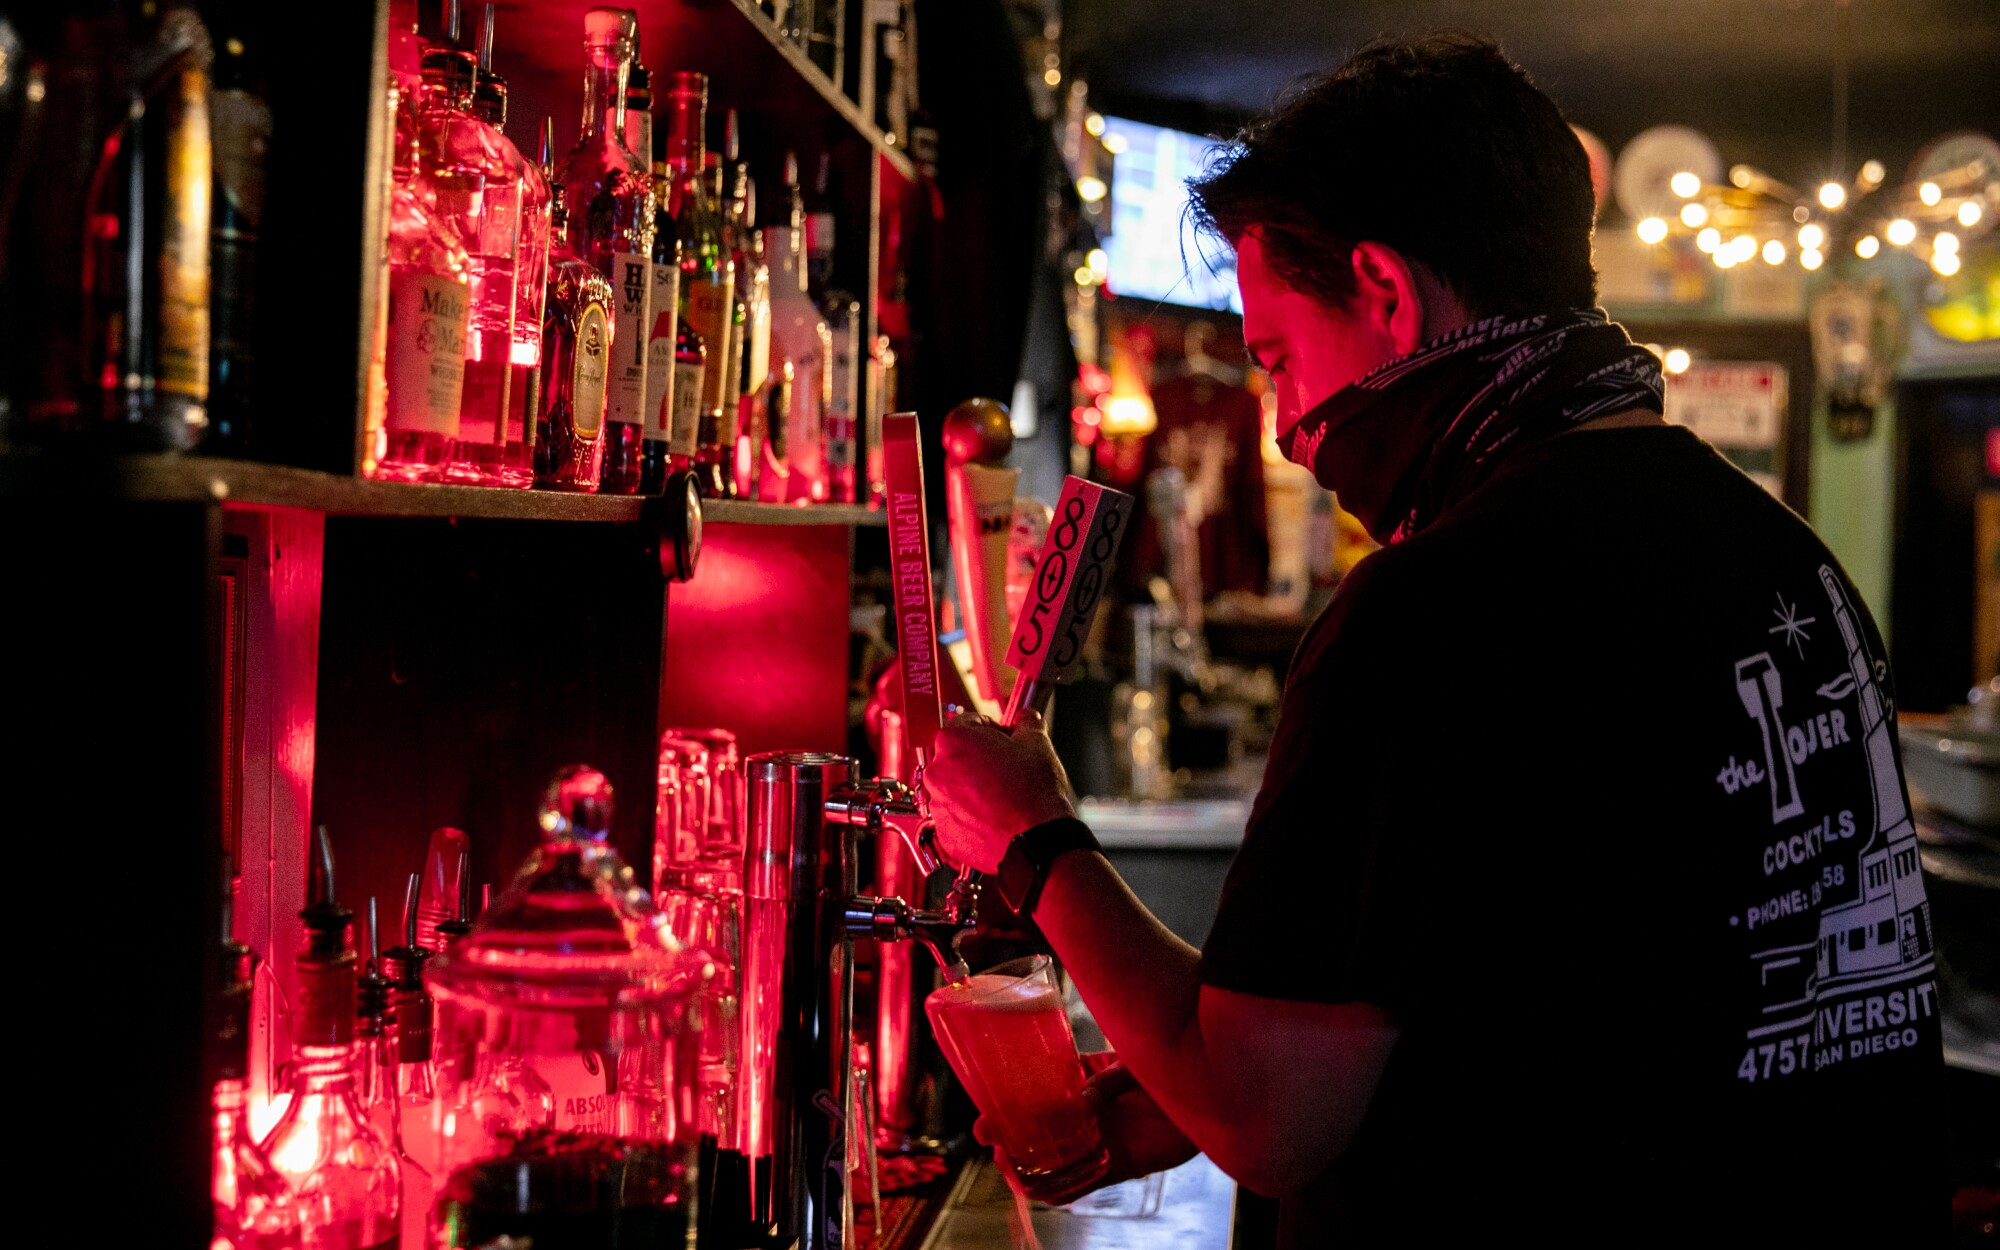 Mick Rosller, owner of The Tower Bar, works behind the bar